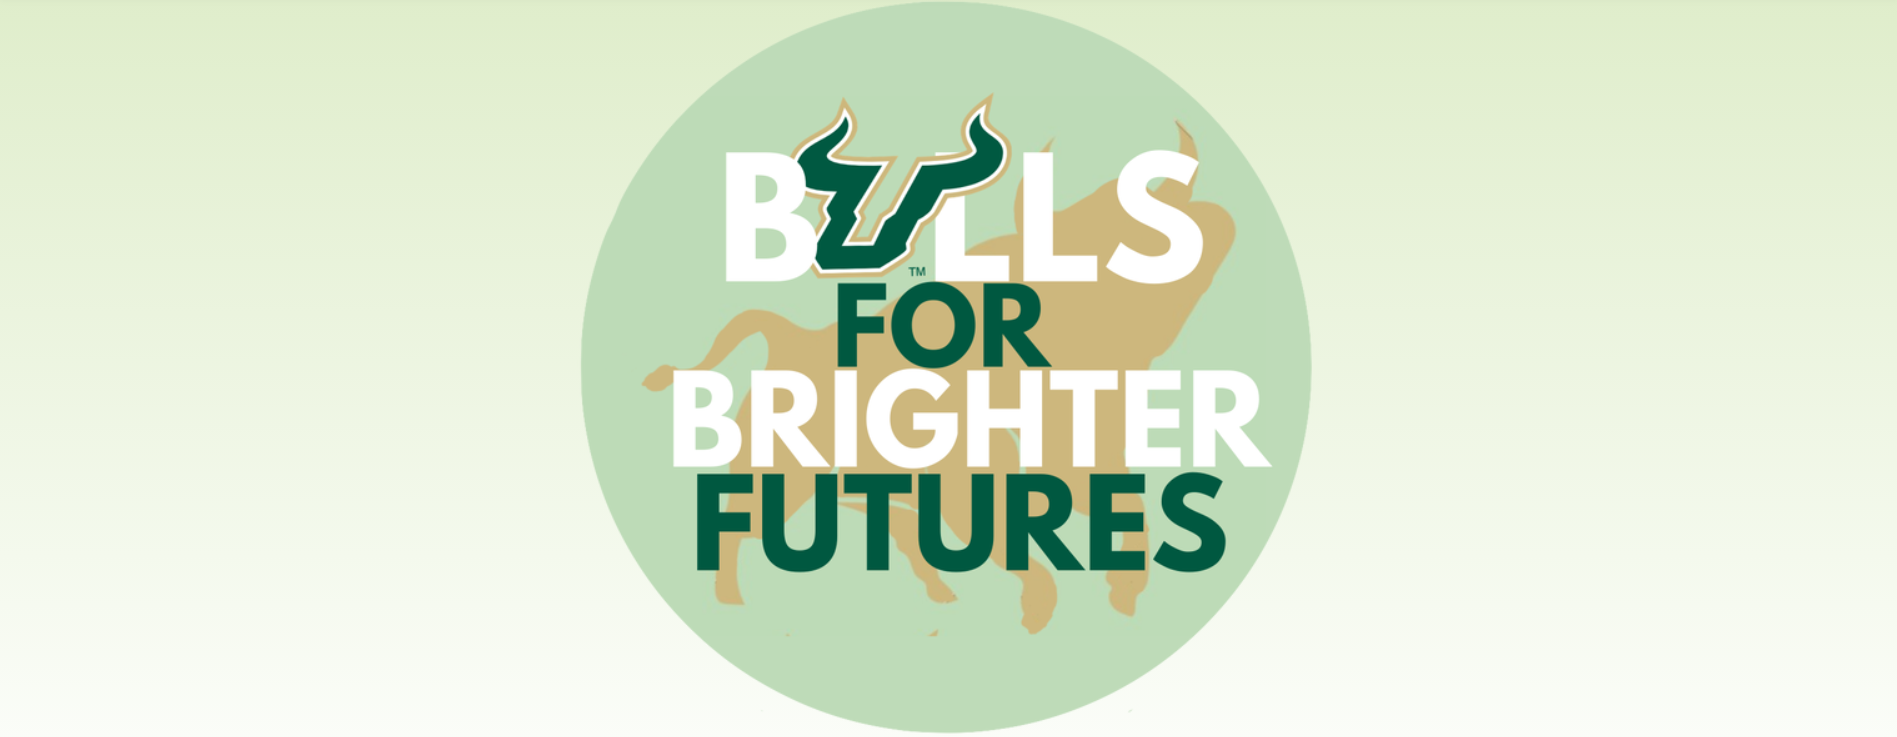 Bulls for Brighter Futures